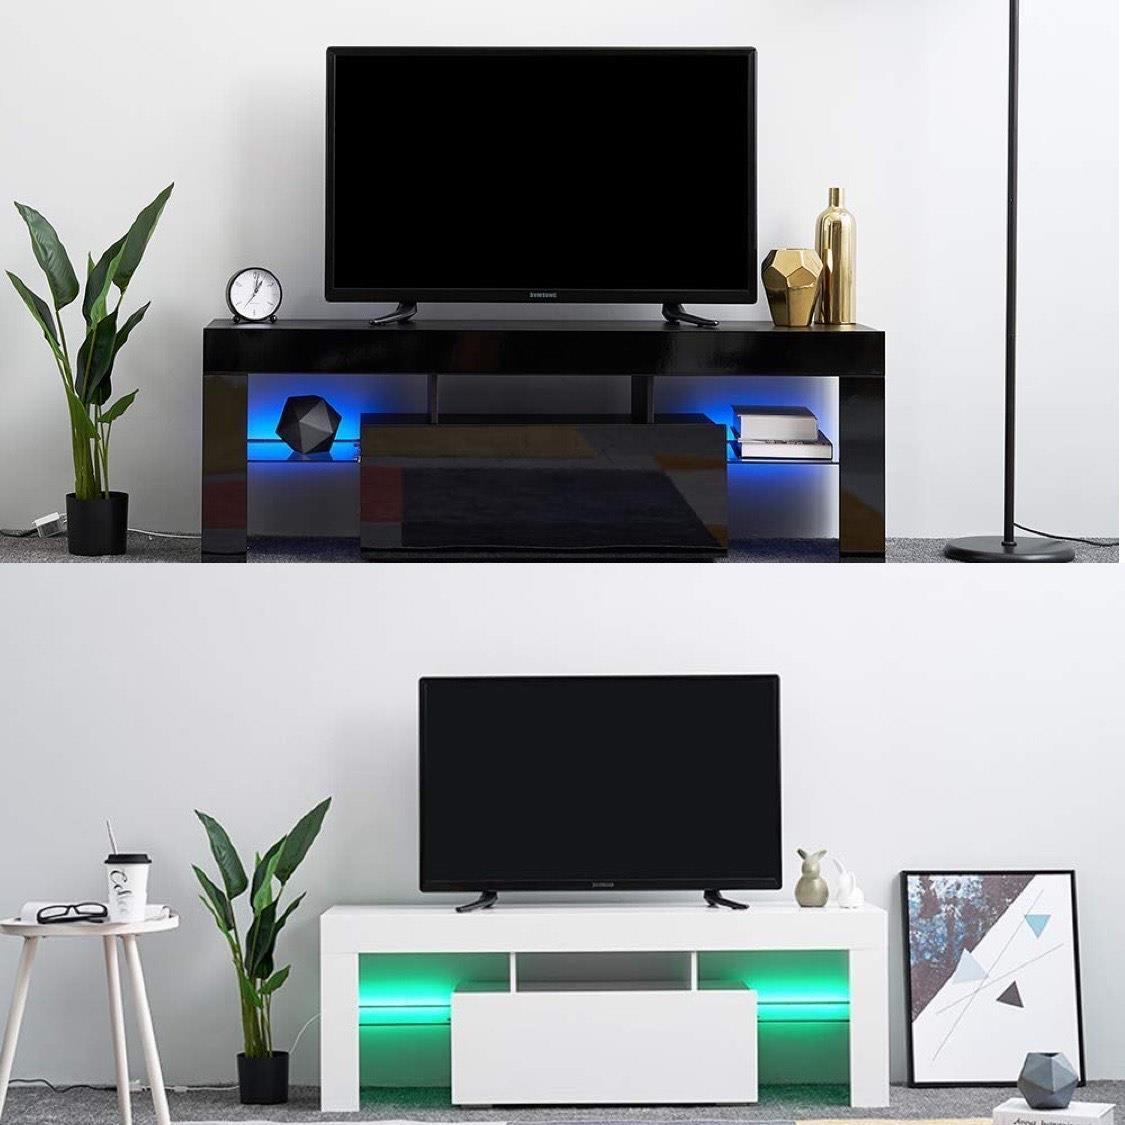 White Empire Trading LED Sideboard 1 Door Storage Cabinet Cupboard Display Stand High Gloss